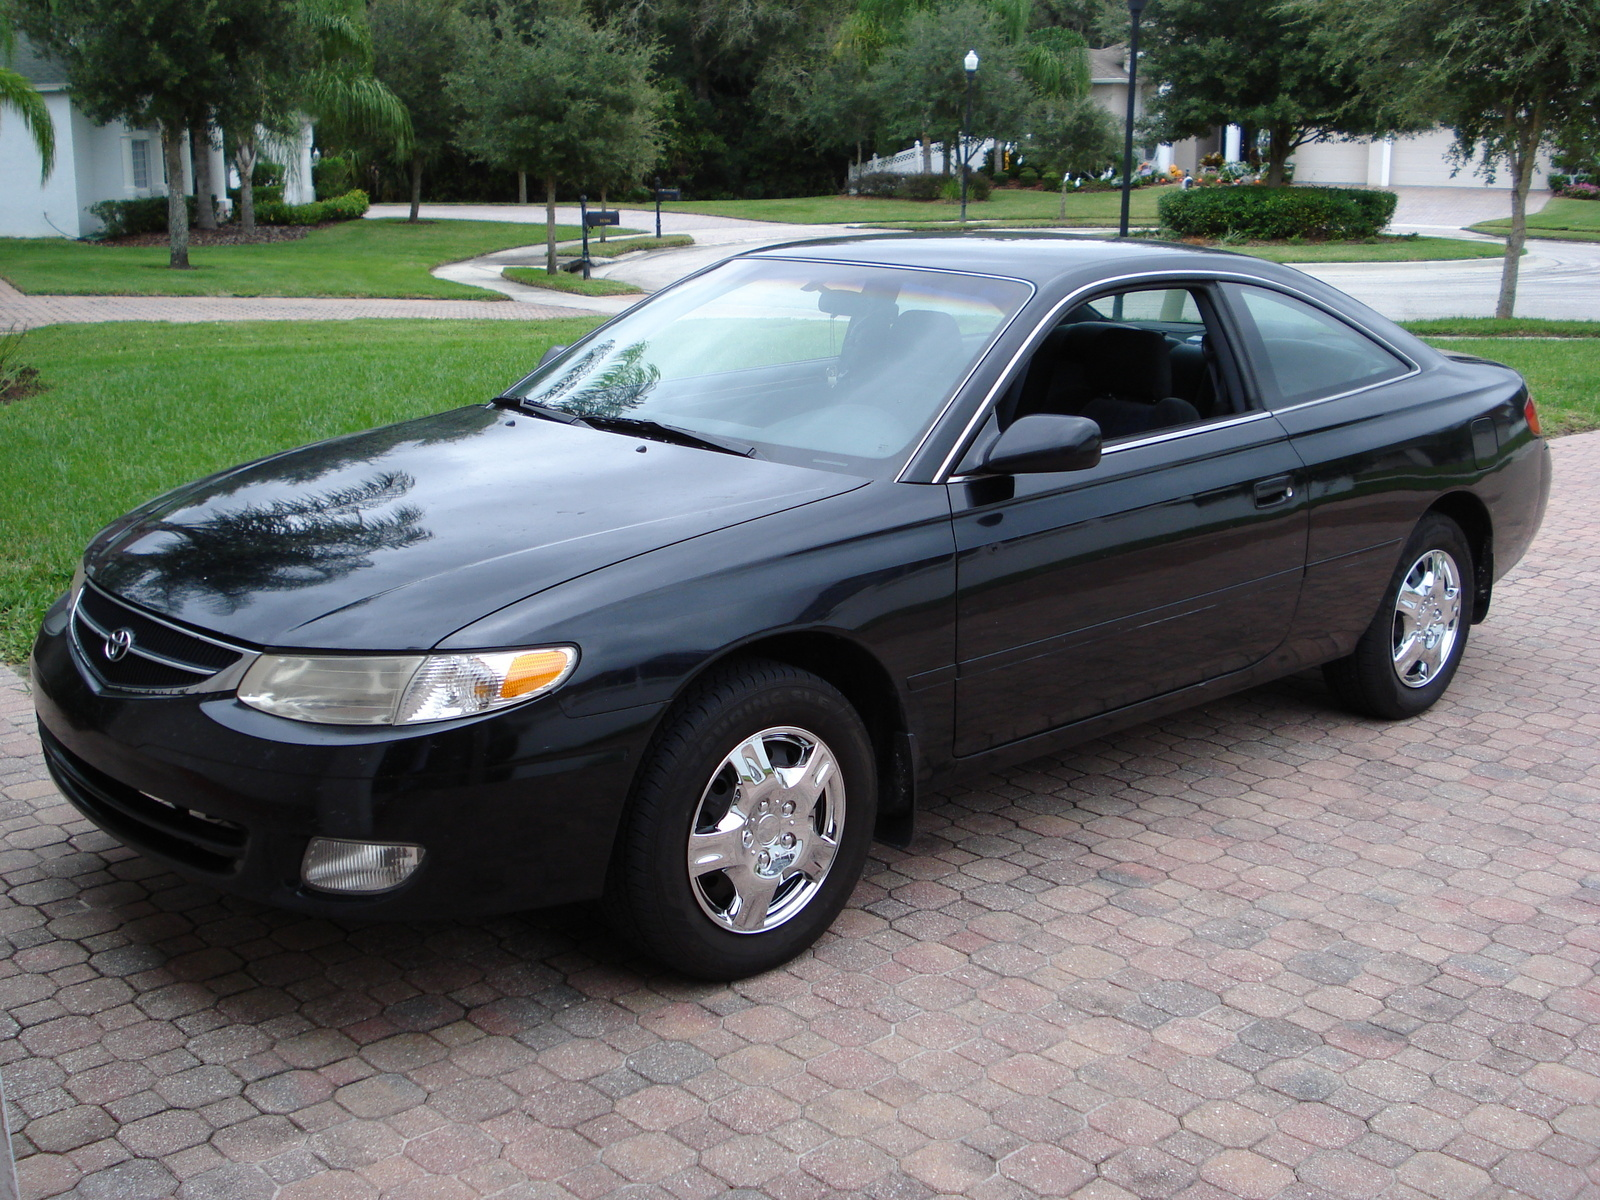 1999 Toyota Camry Solara  Overview  CarGurus